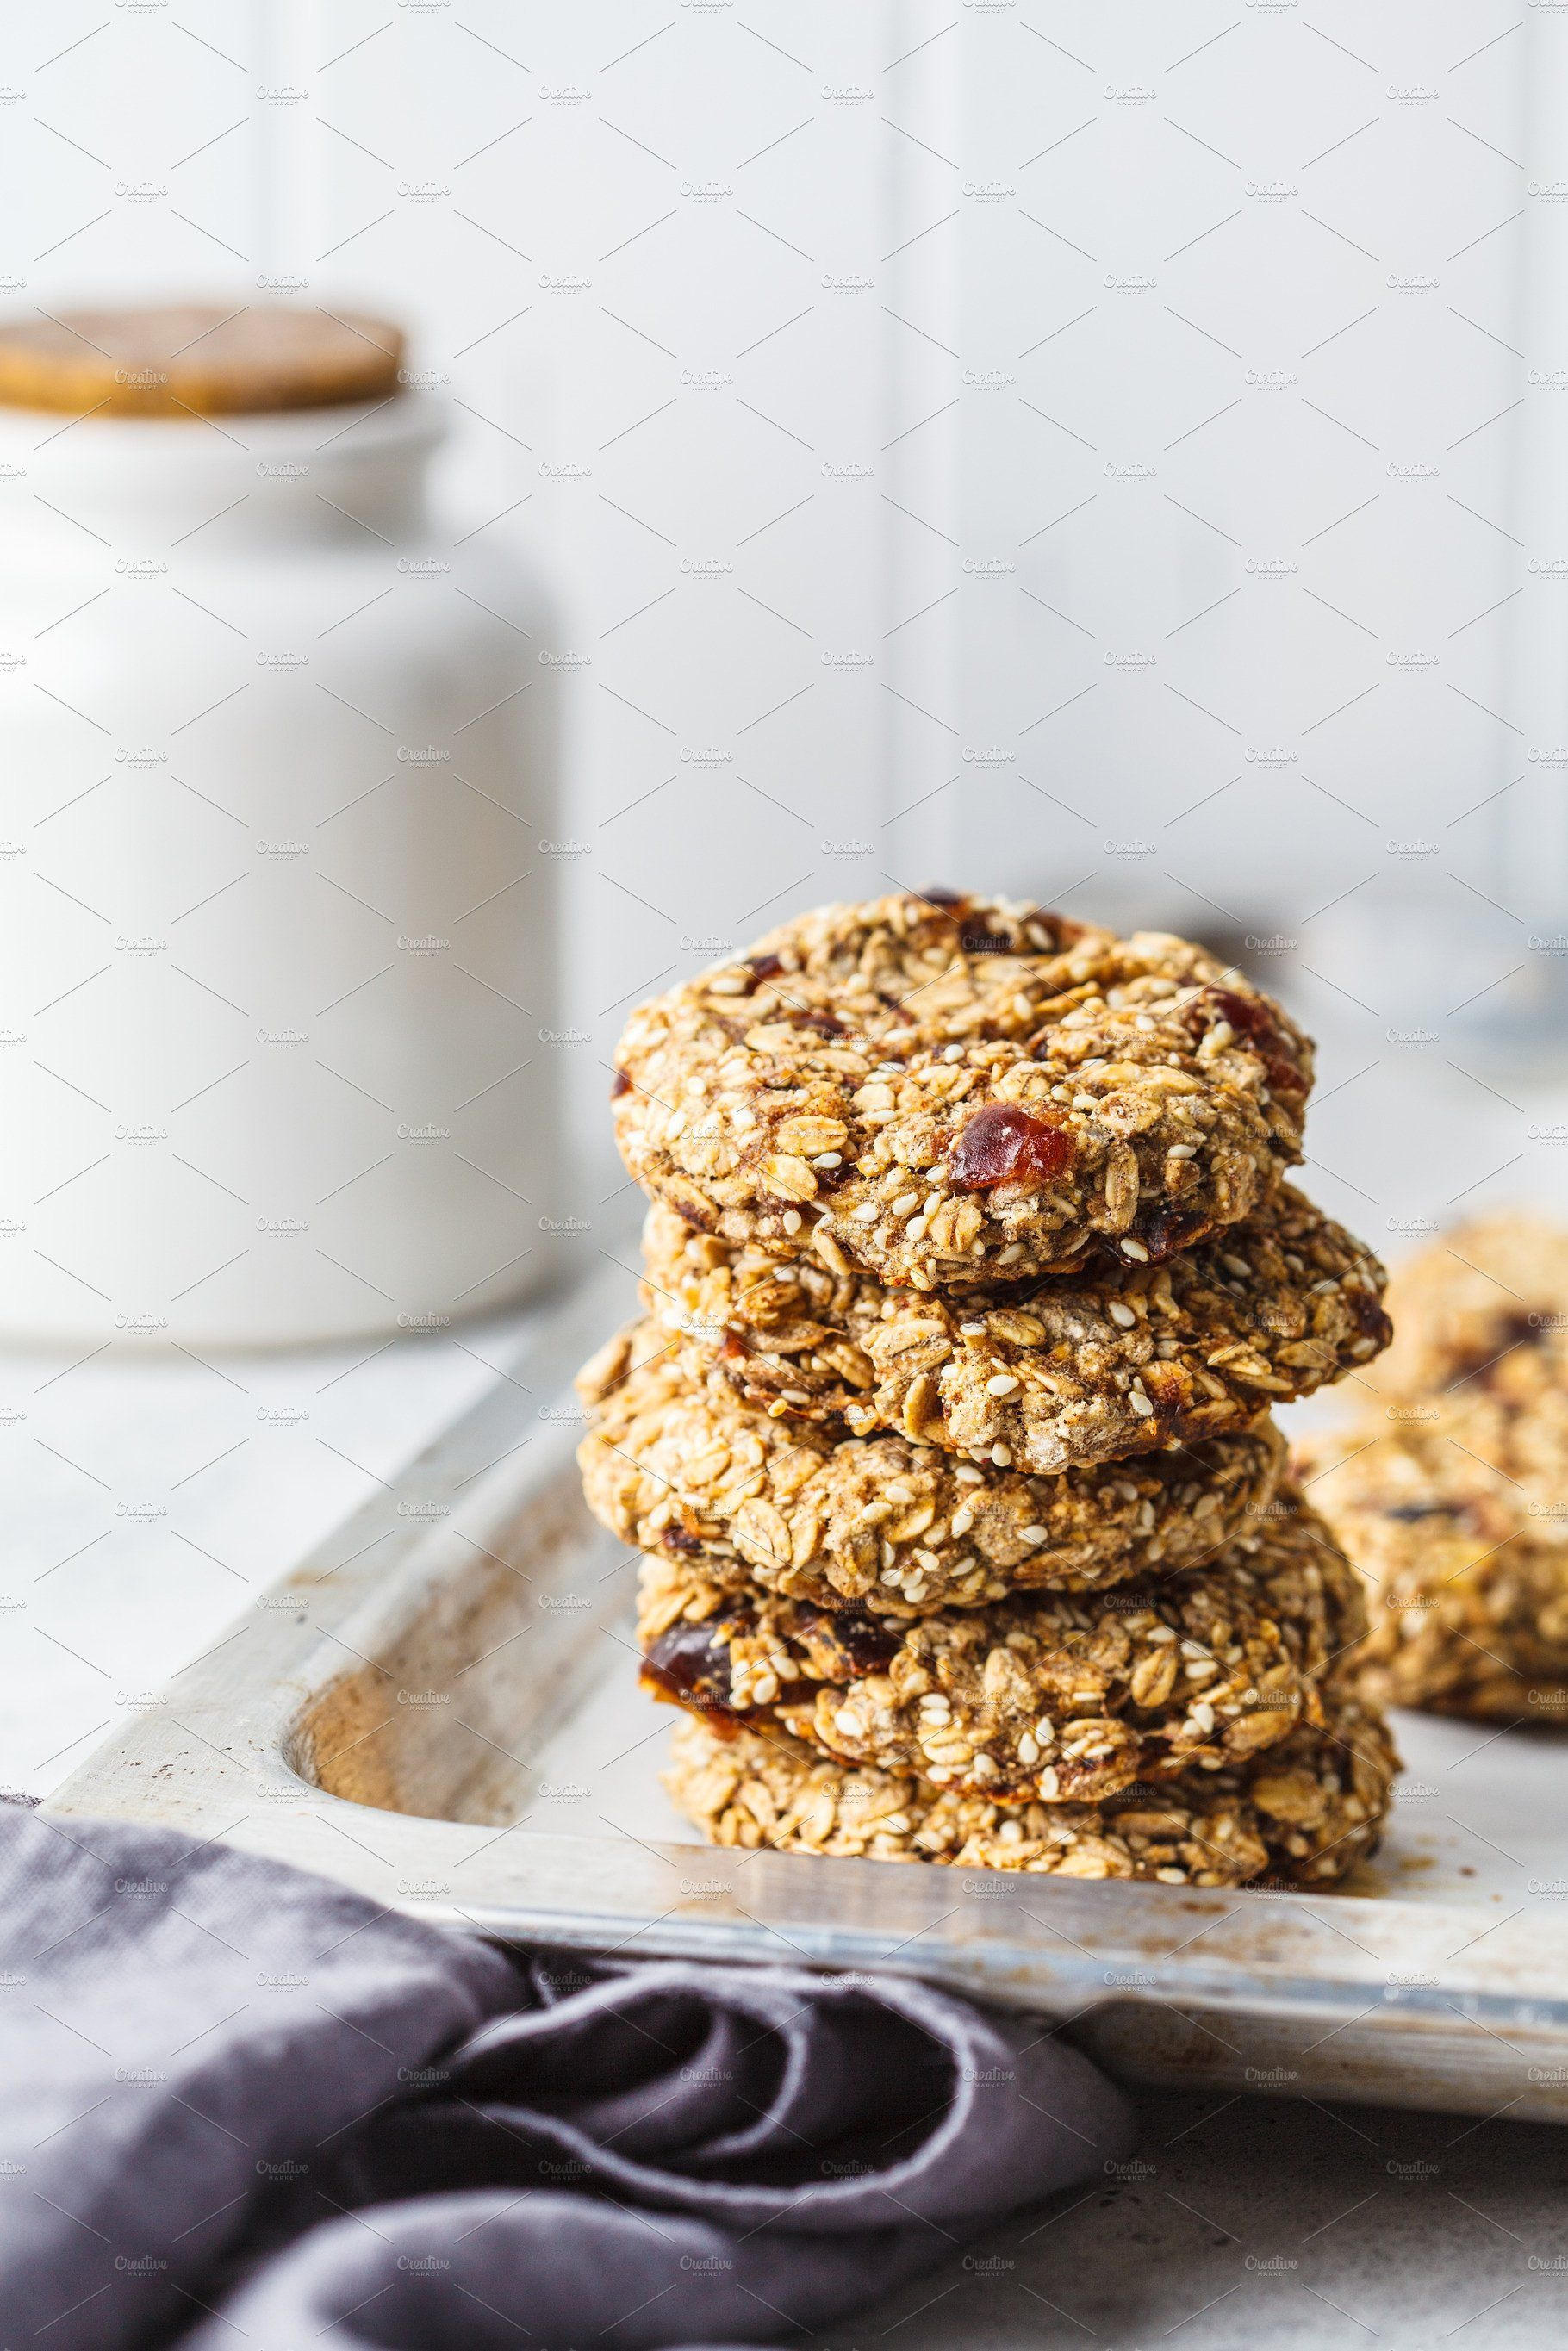 Stack Of Oatmeal Cookies With Dates Healthy Vegan Desserts Vegan Nutrition Food Shop